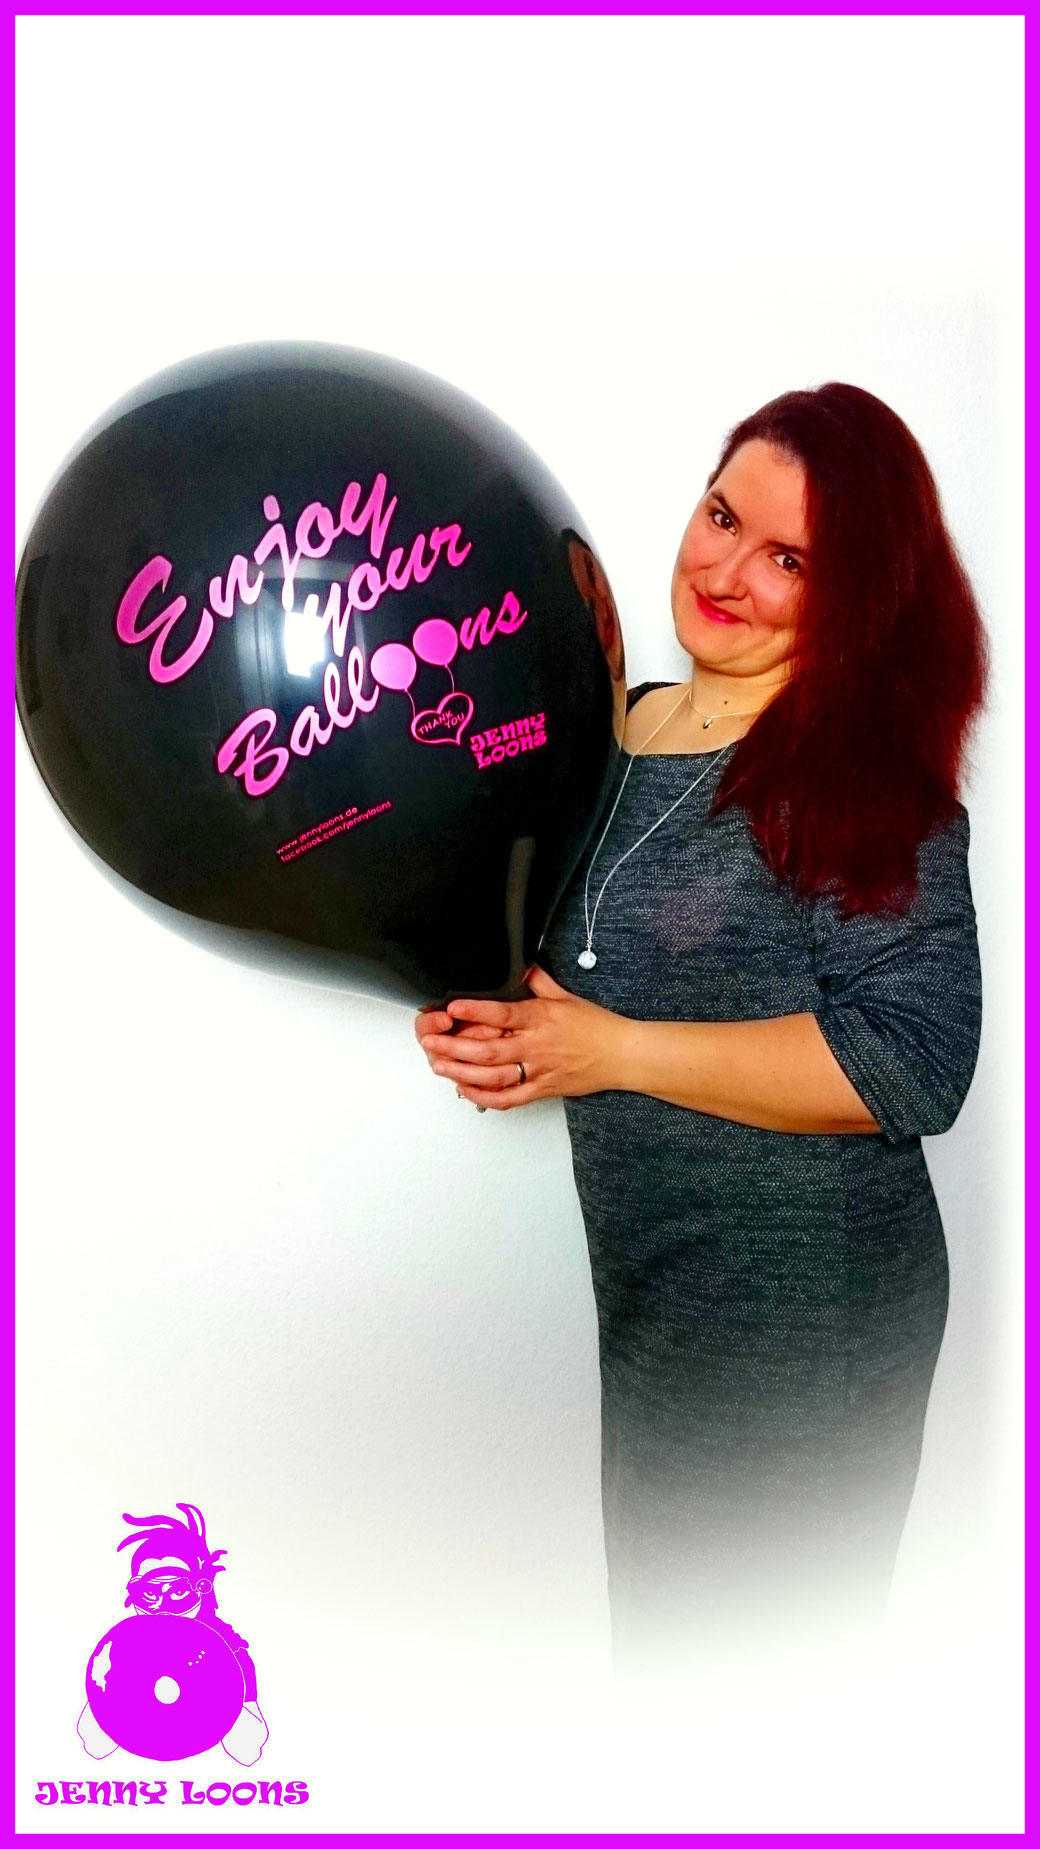 "CATTEX 16"" Enjoy your Balloons Made in EU - Italy - JENNY LOONS"